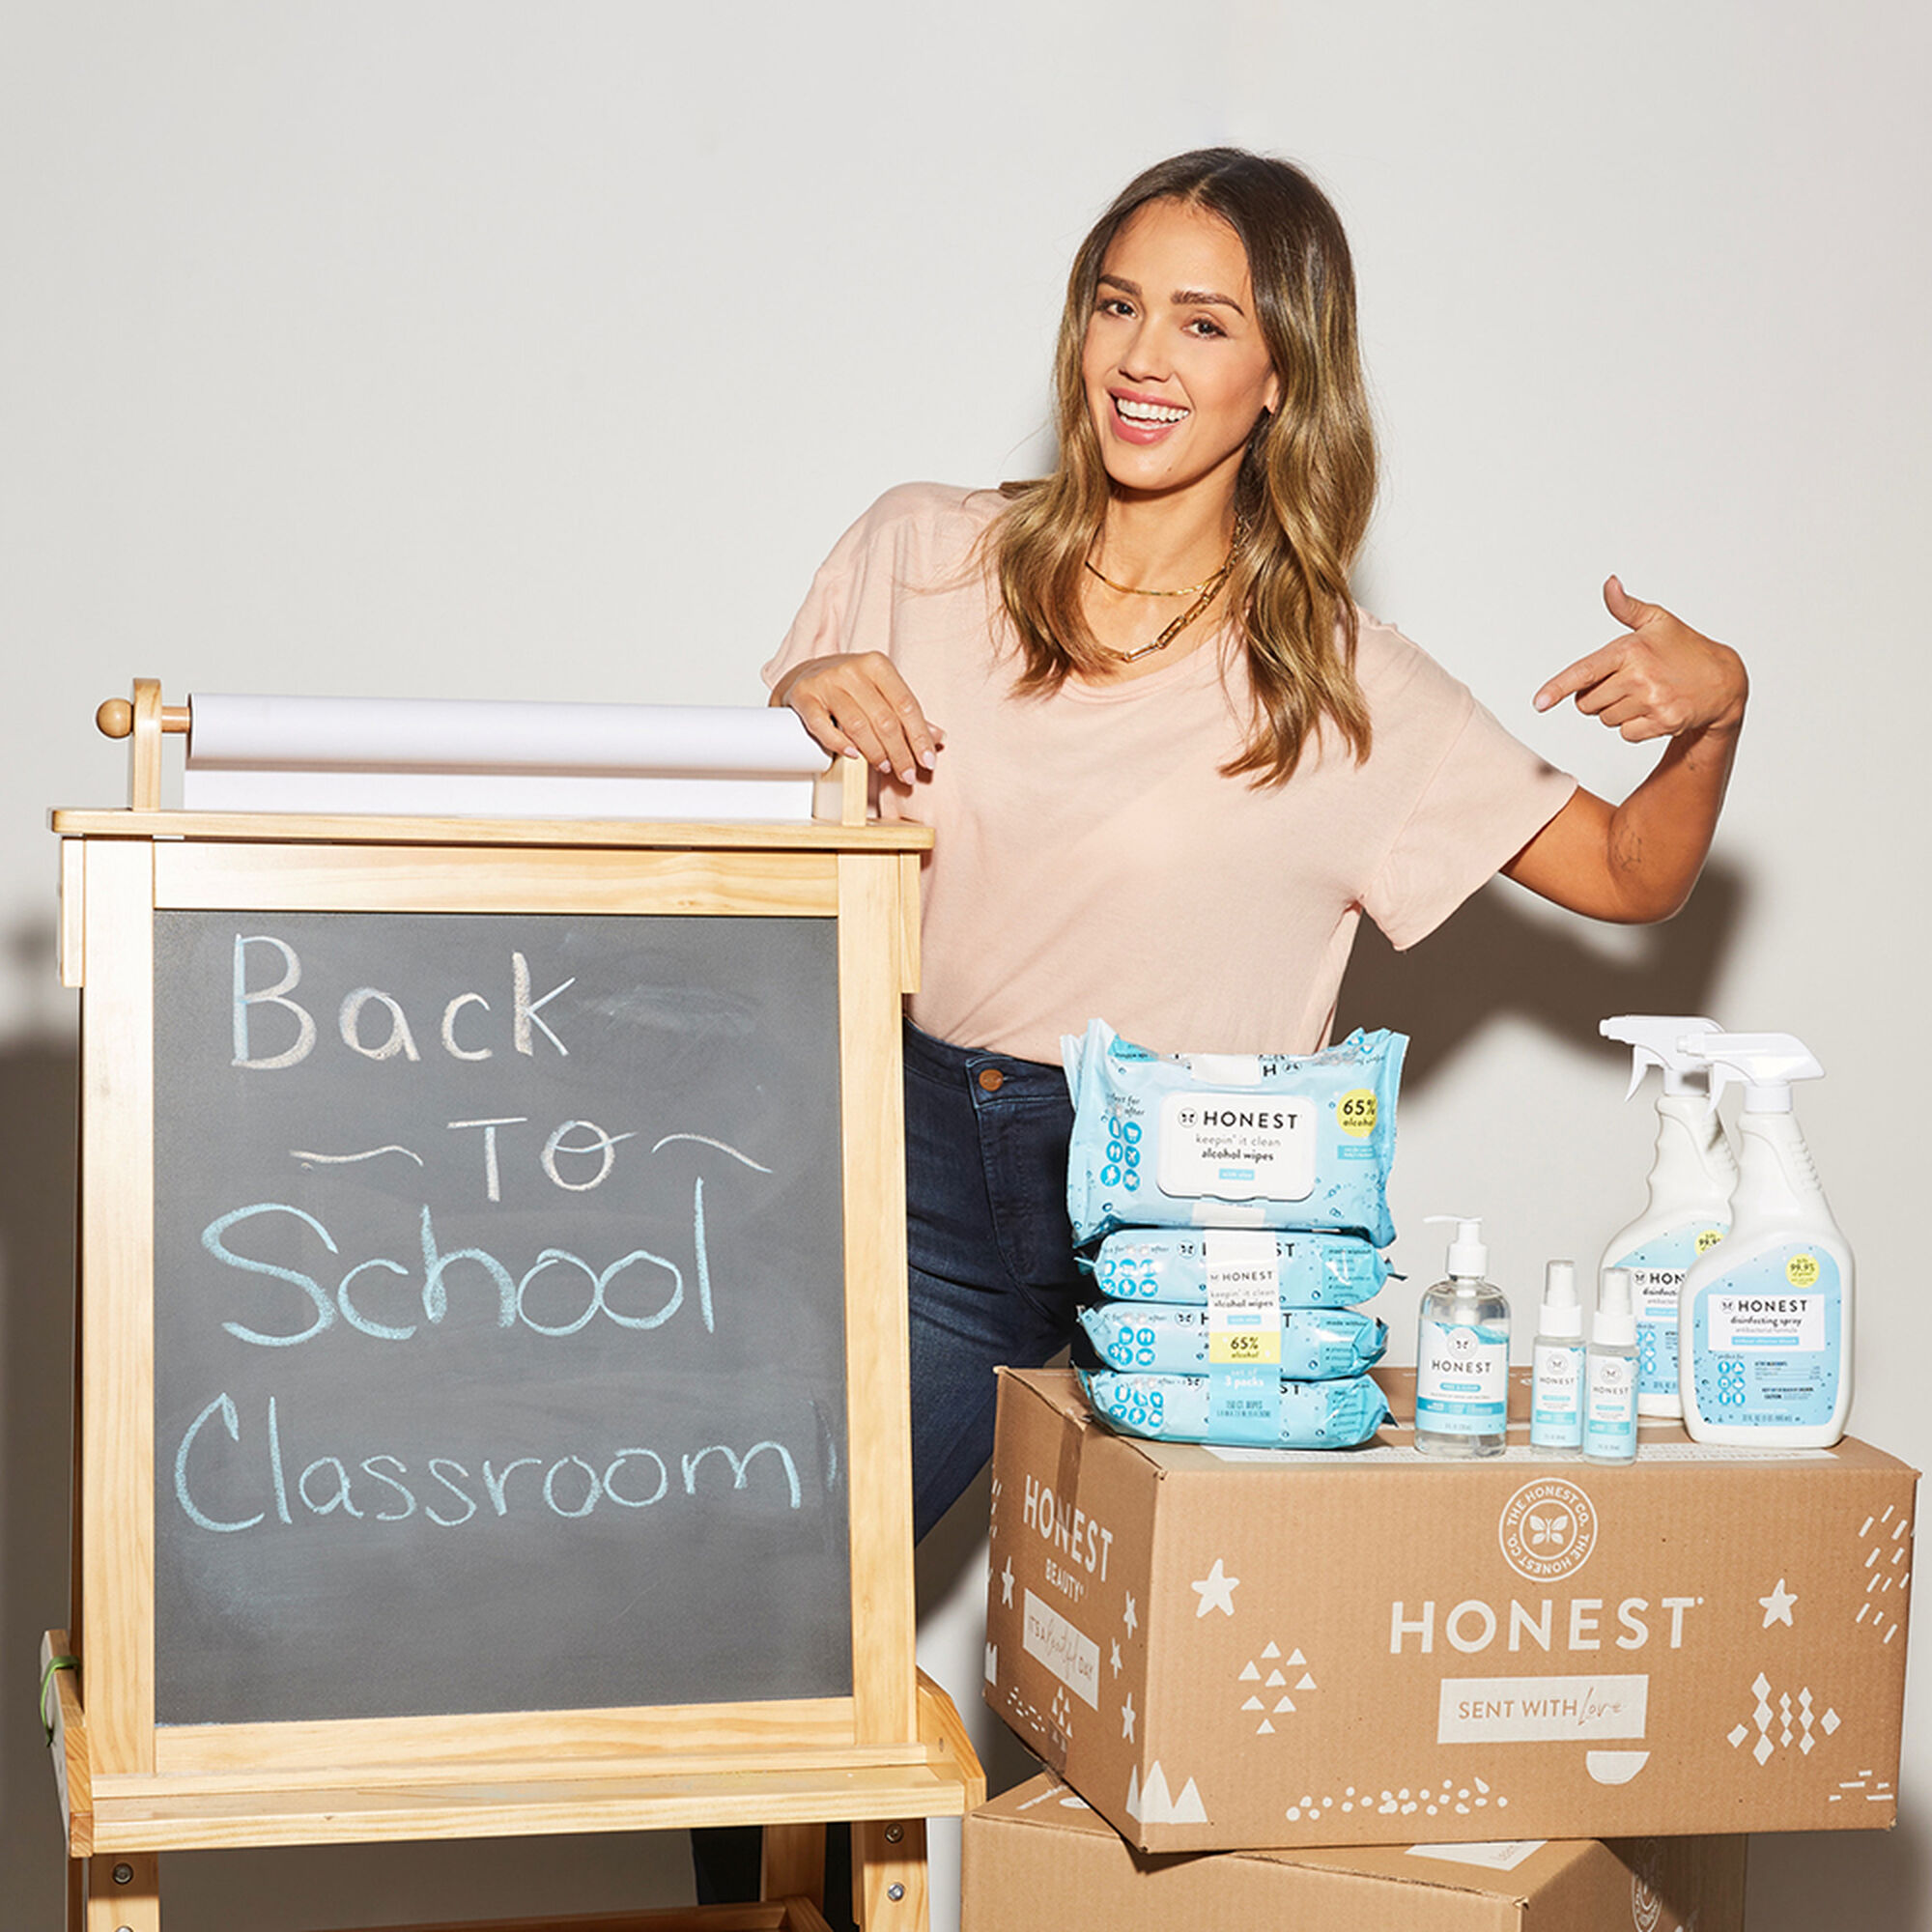 Back To School Classroom Kit